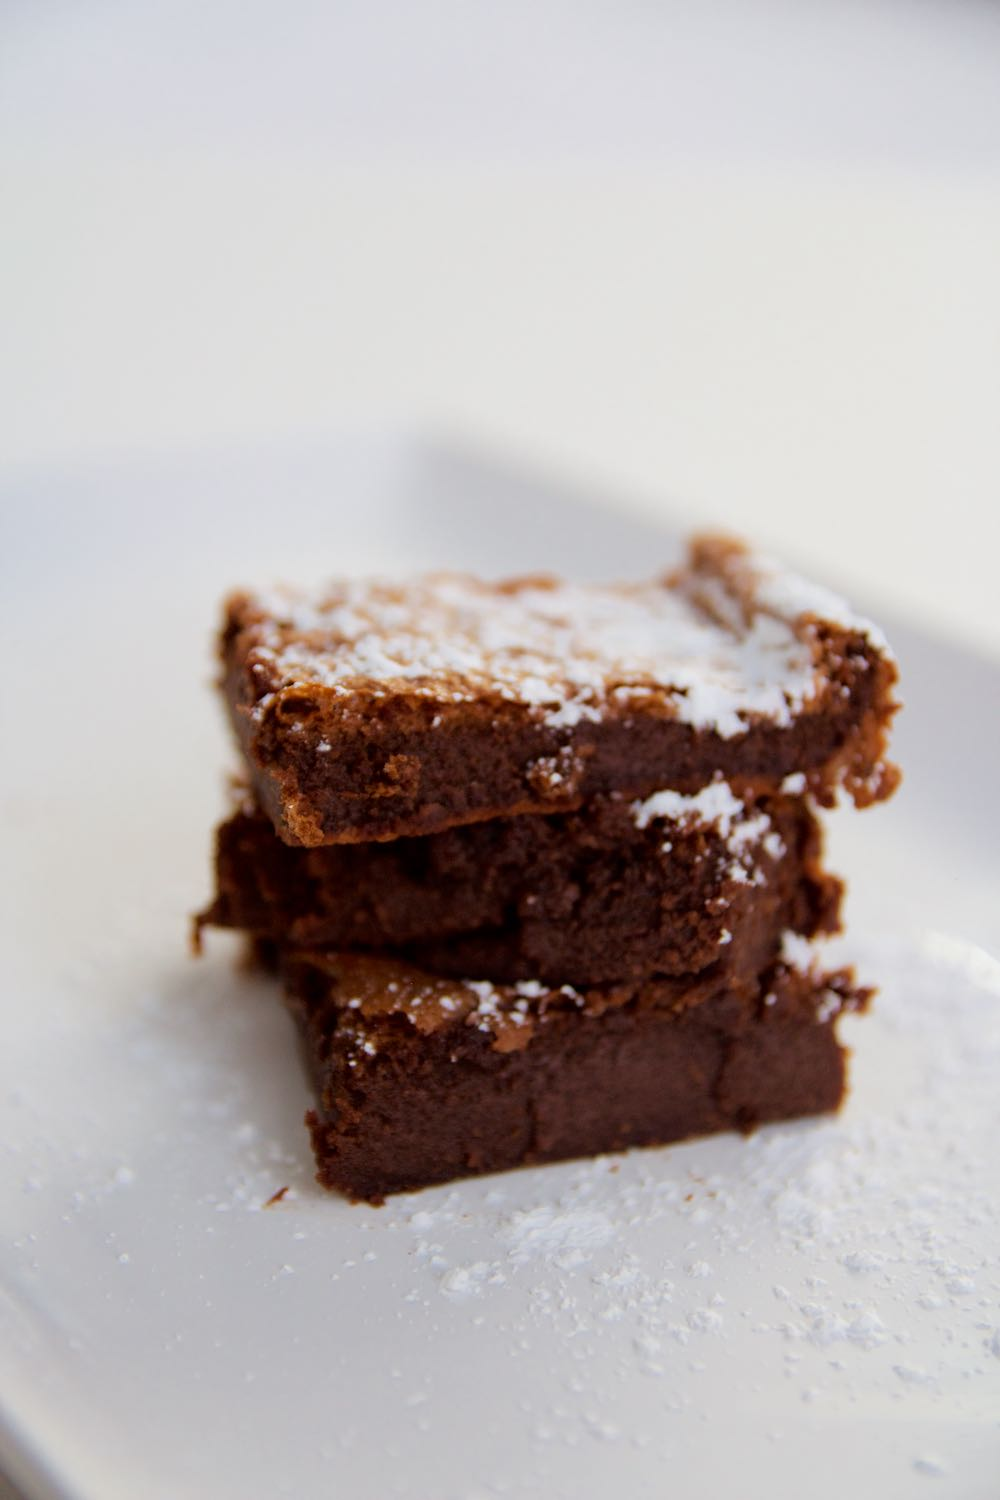 Two-ingredient brownies made with Nutella chocolate hazelnut spread